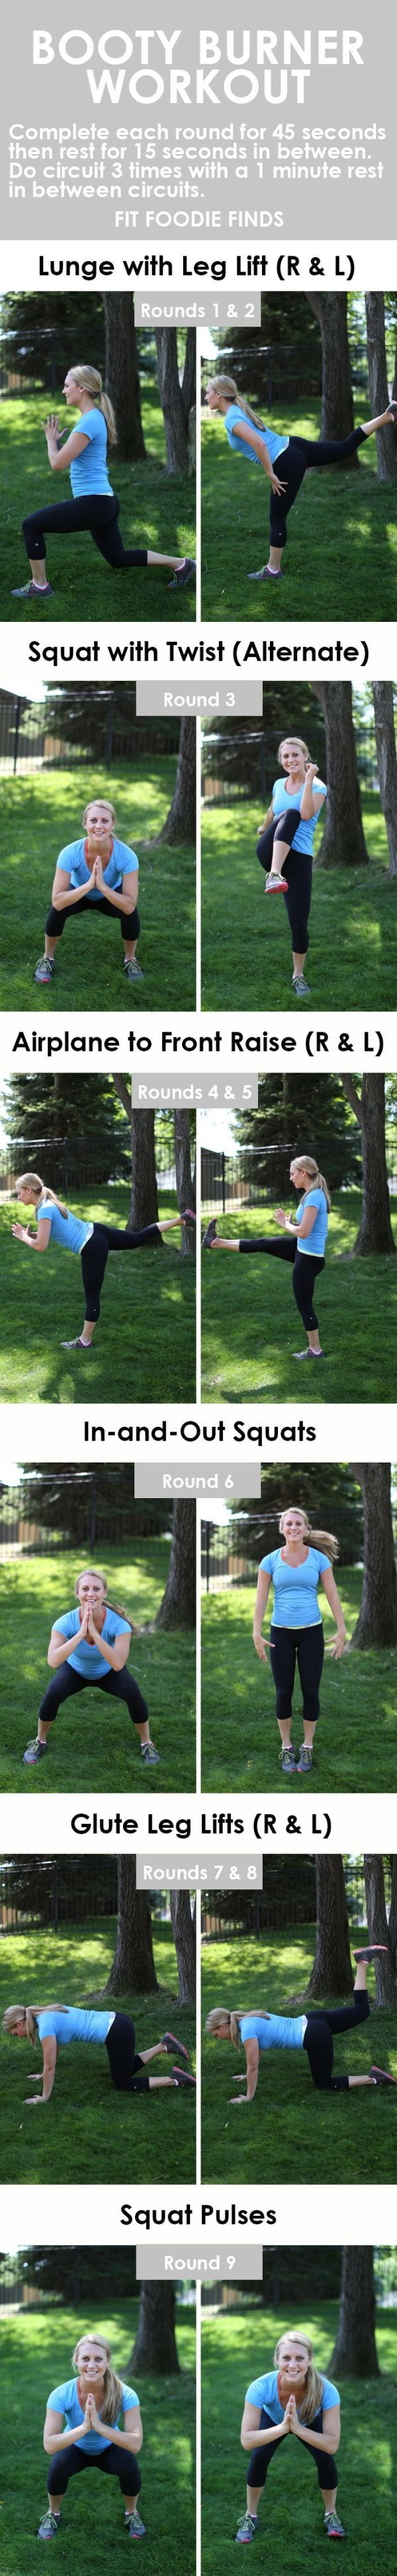 BOOTY BURNER: Workouts Targeting the Legs and Butt